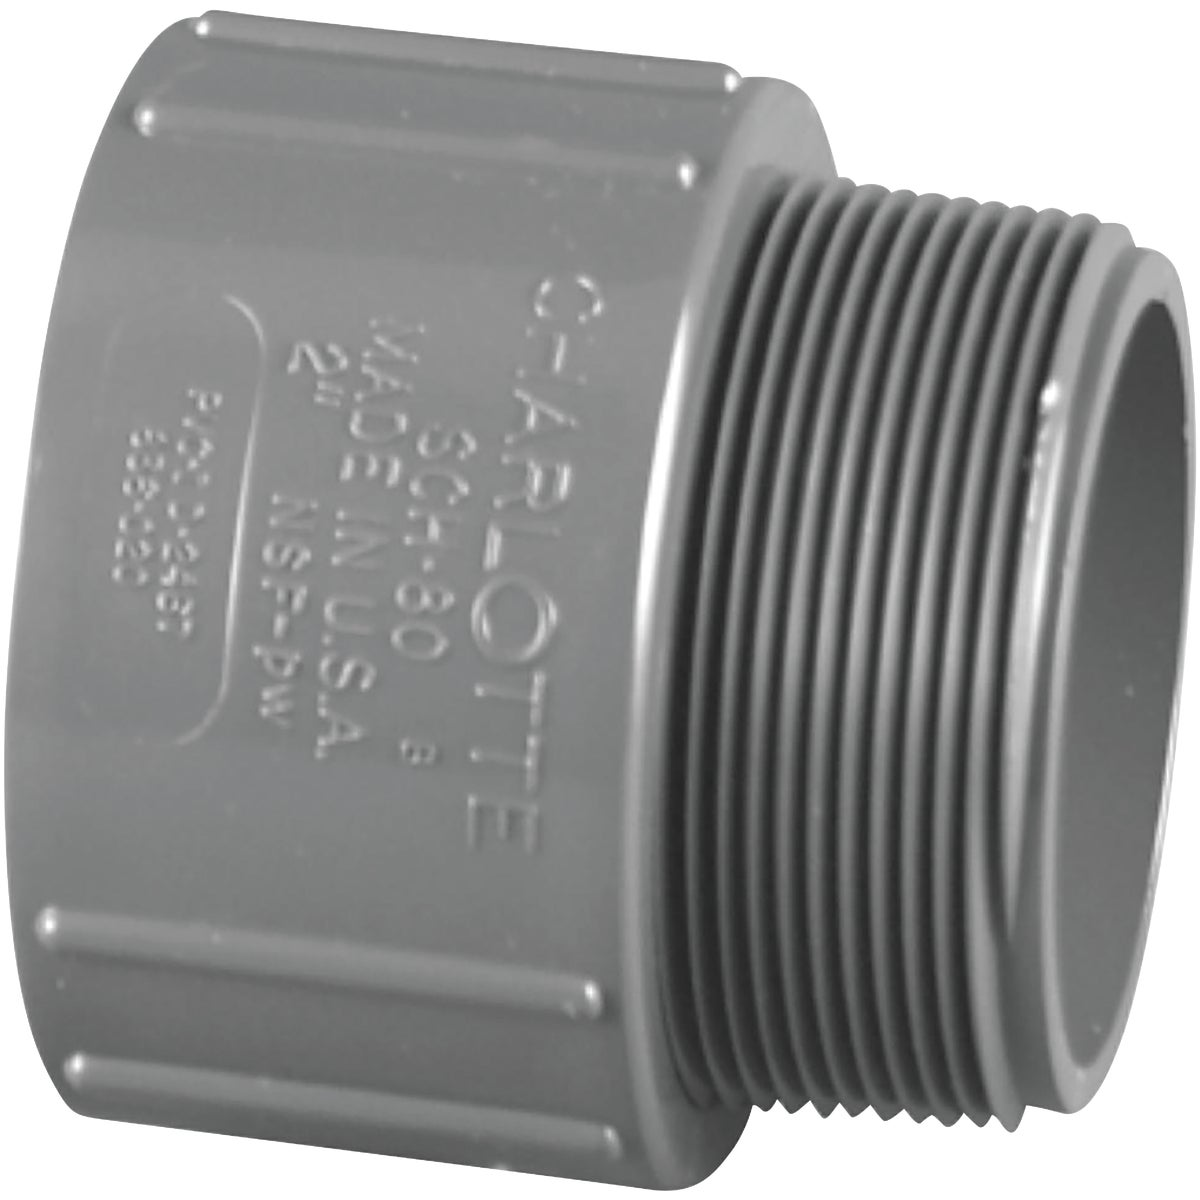 1-1/4 SCH80 MALE ADAPTER - 304148 by Genova Inc